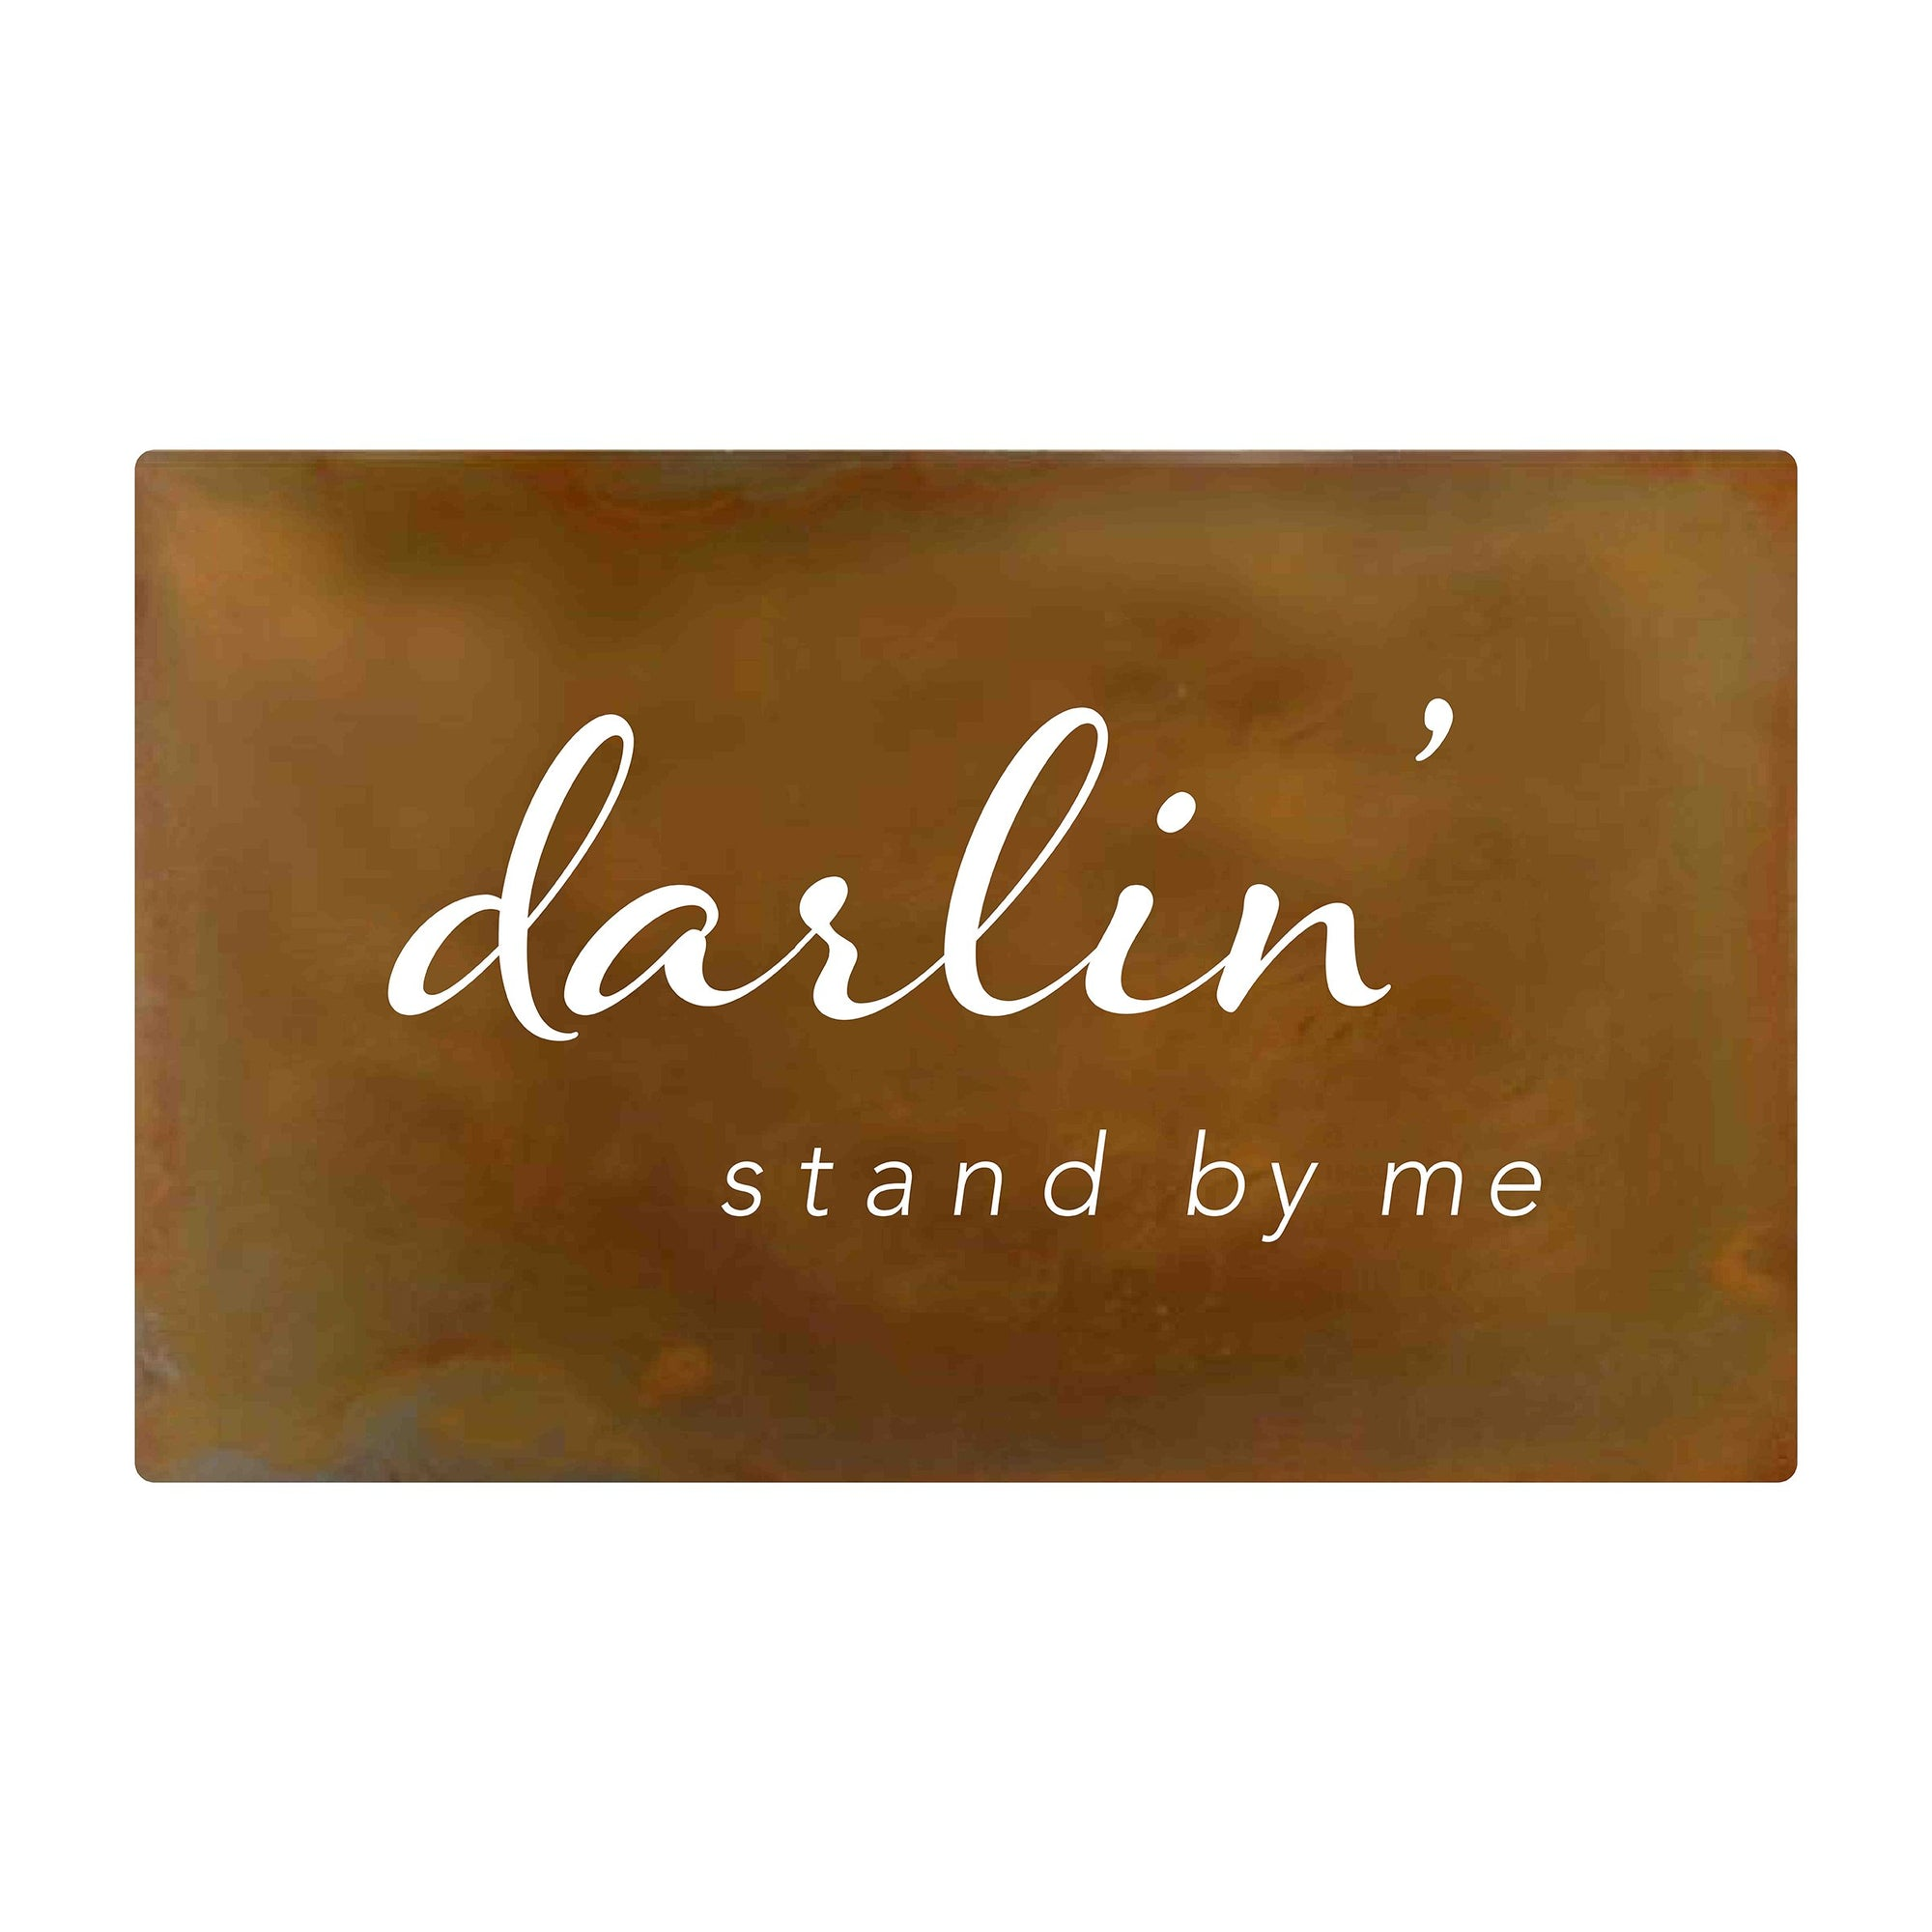 Buy Darlin' Stand by Me, Song Lyric Metal Wall Art from Walking Pants Curiosities, the Most un-General Gift Store in Downtown Memphis, Tennessee!